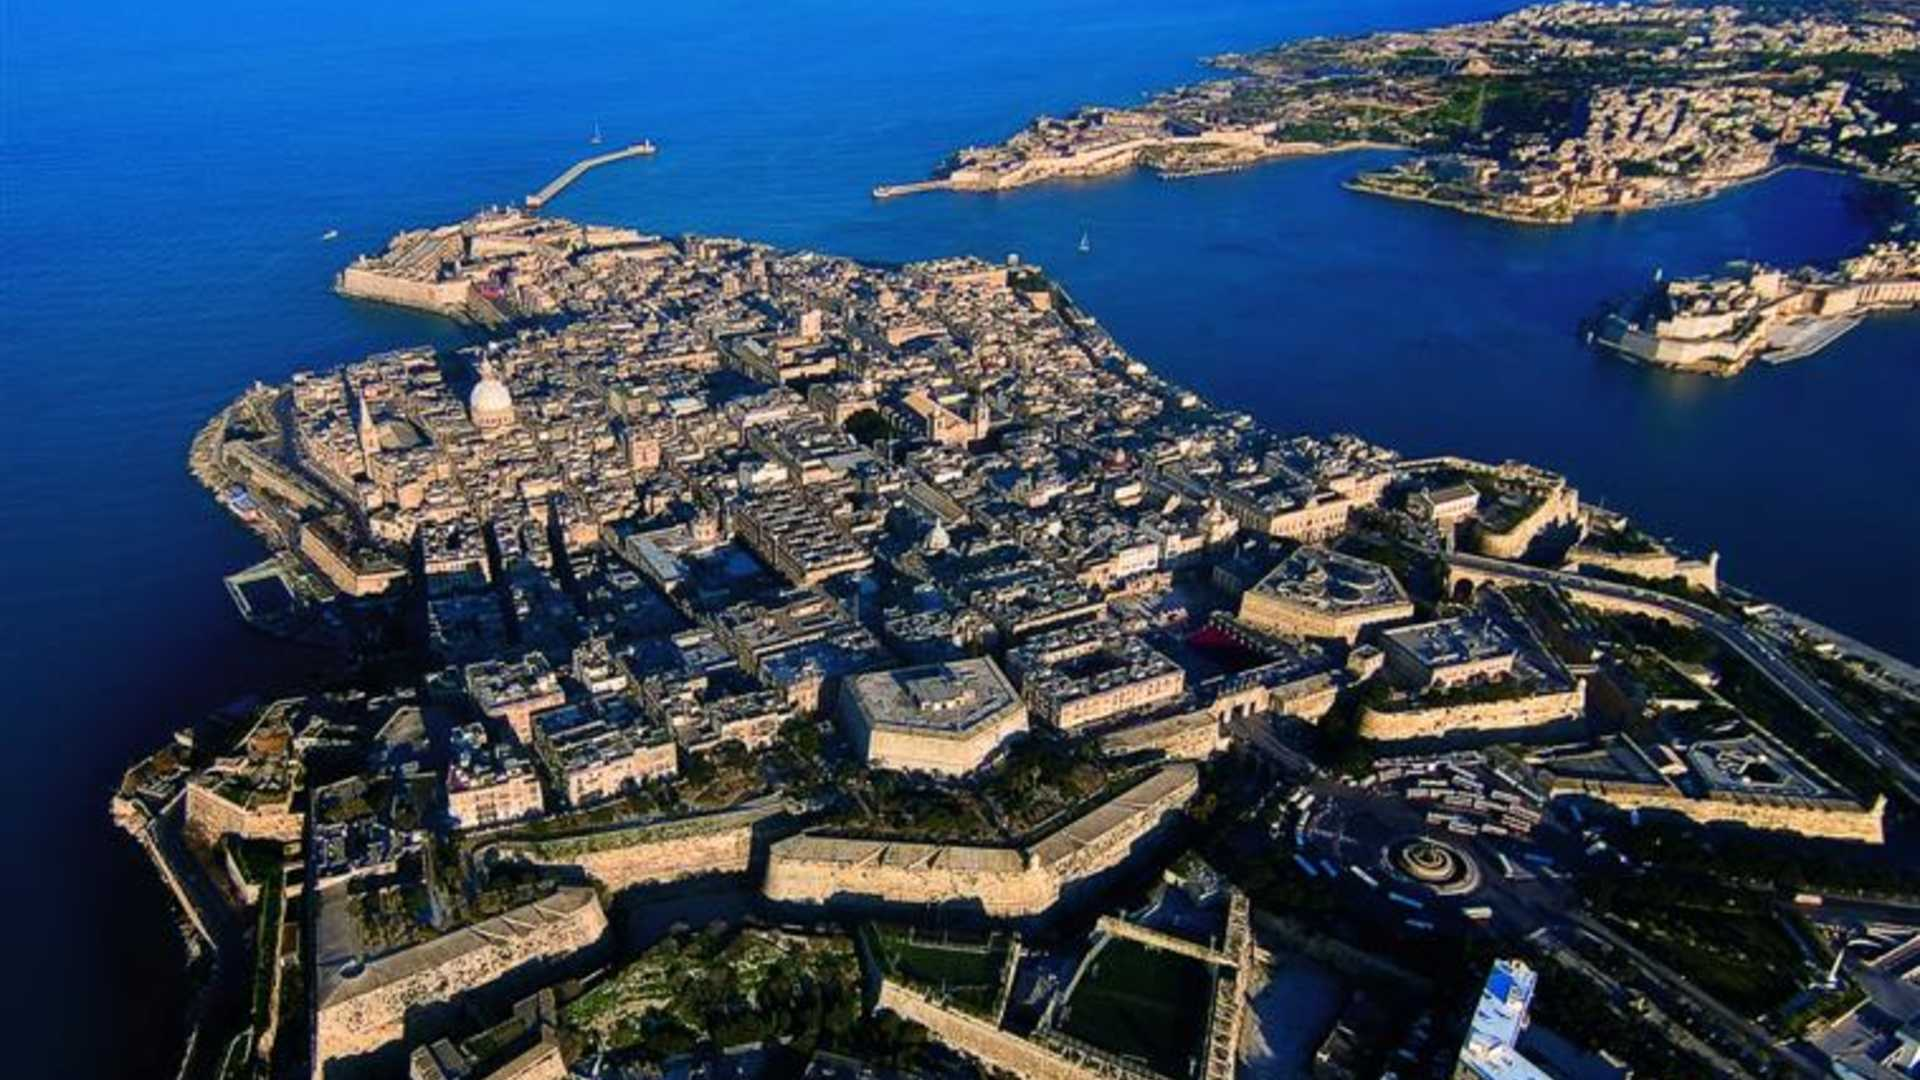 The capital city of Malta